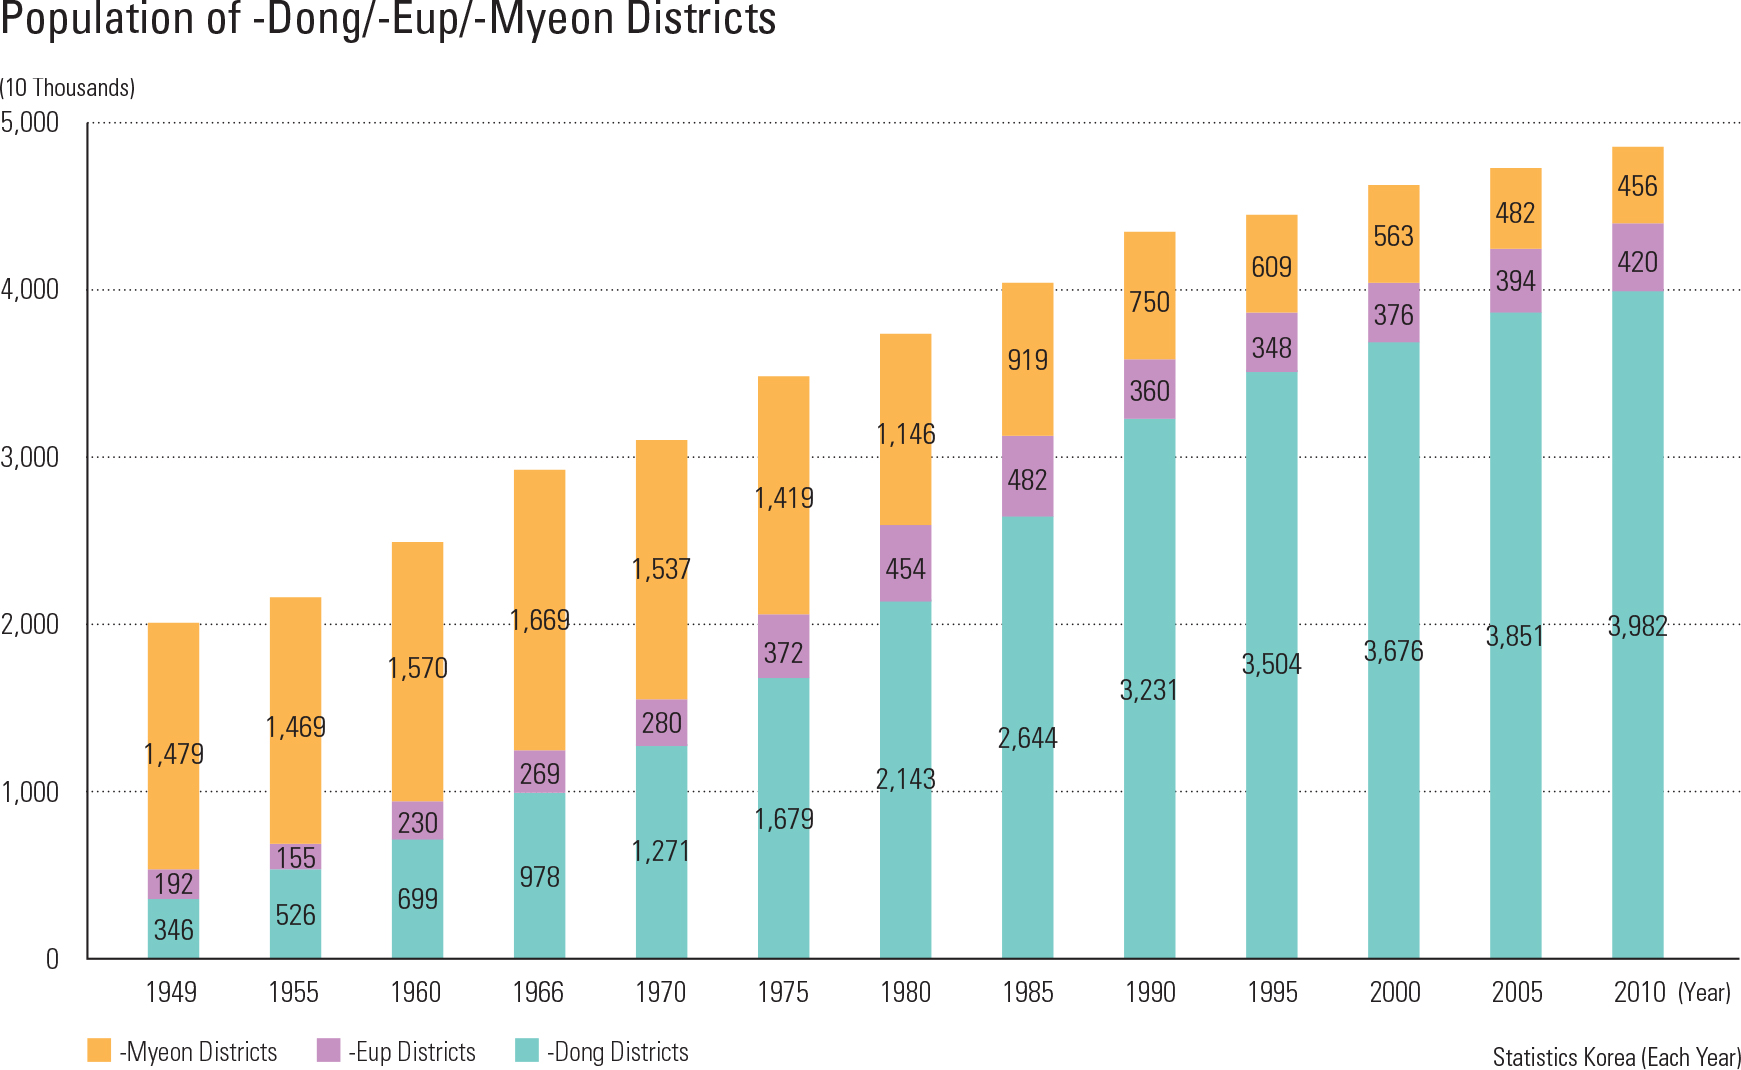 """Population of -Dong/-Eup/-Myeon Districts<p class=""""oz_zoom"""" zimg=""""http://imagedata.cafe24.com/us_3/us3_98-1_2.jpg""""><span style=""""font-family:Nanum Myeongjo;""""><span style=""""font-size:18px;""""><span class=""""label label-danger"""">UPDATE DATA</span></span></p>"""